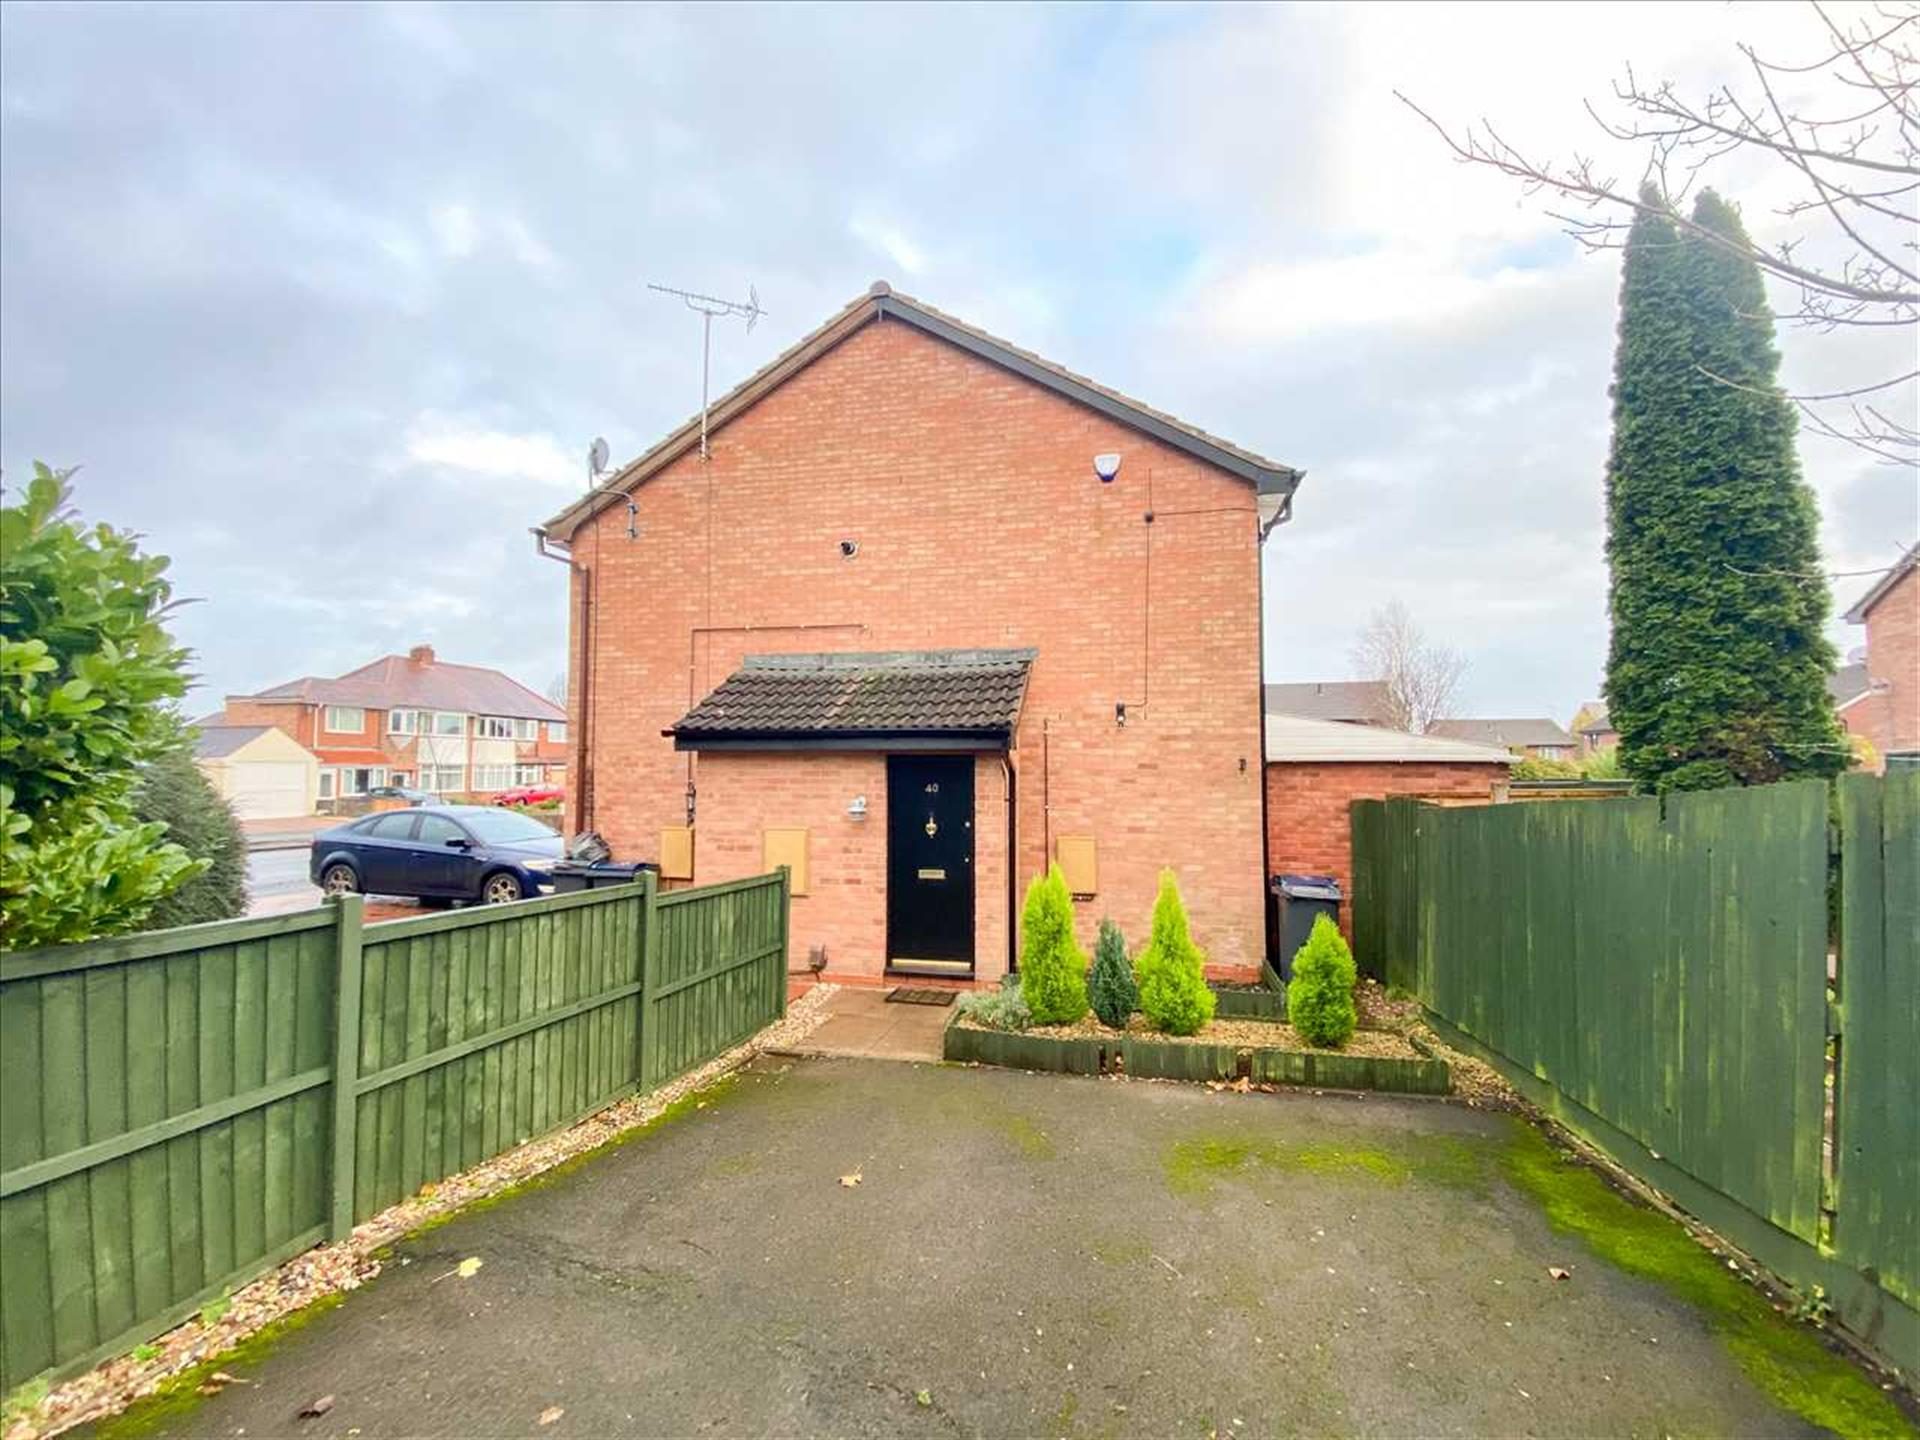 1 Bedroom Semi-detached House For Sale - Image 8